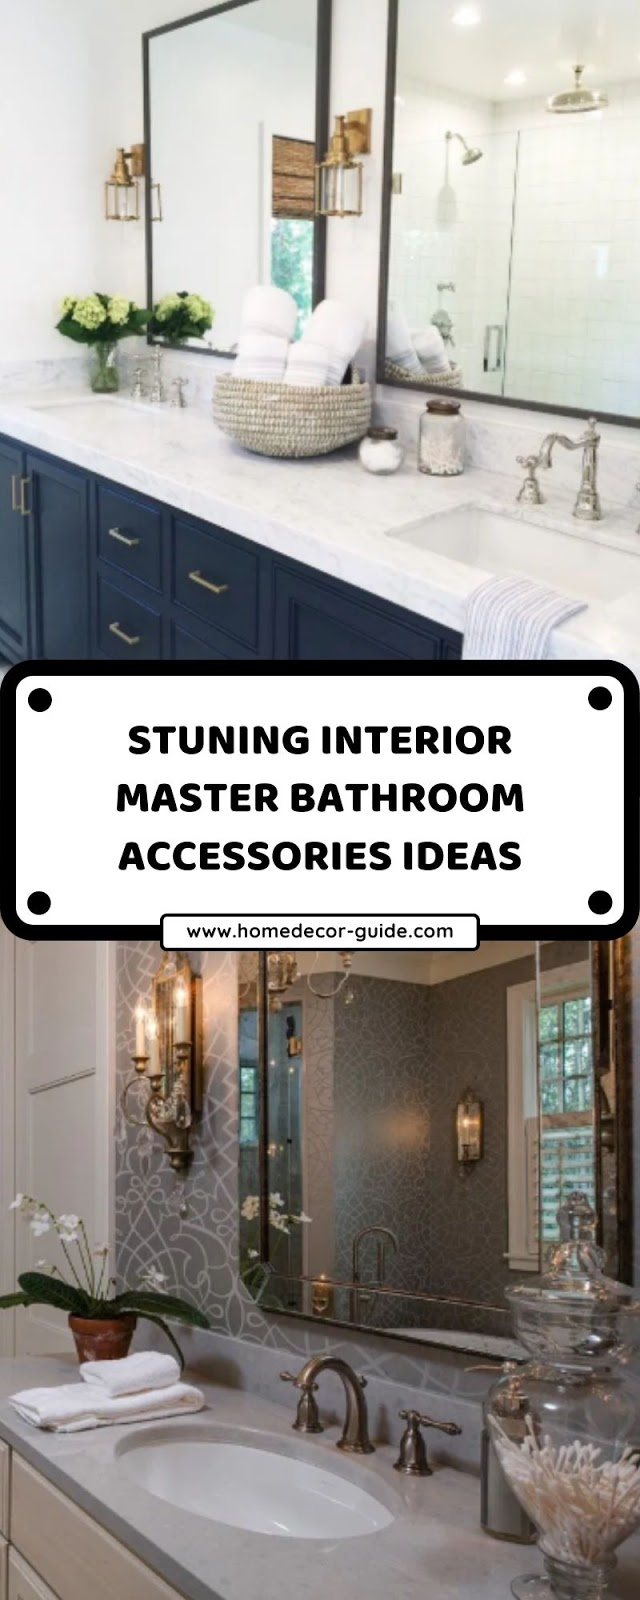 STUNING INTERIOR MASTER BATHROOM ACCESSORIES IDEAS